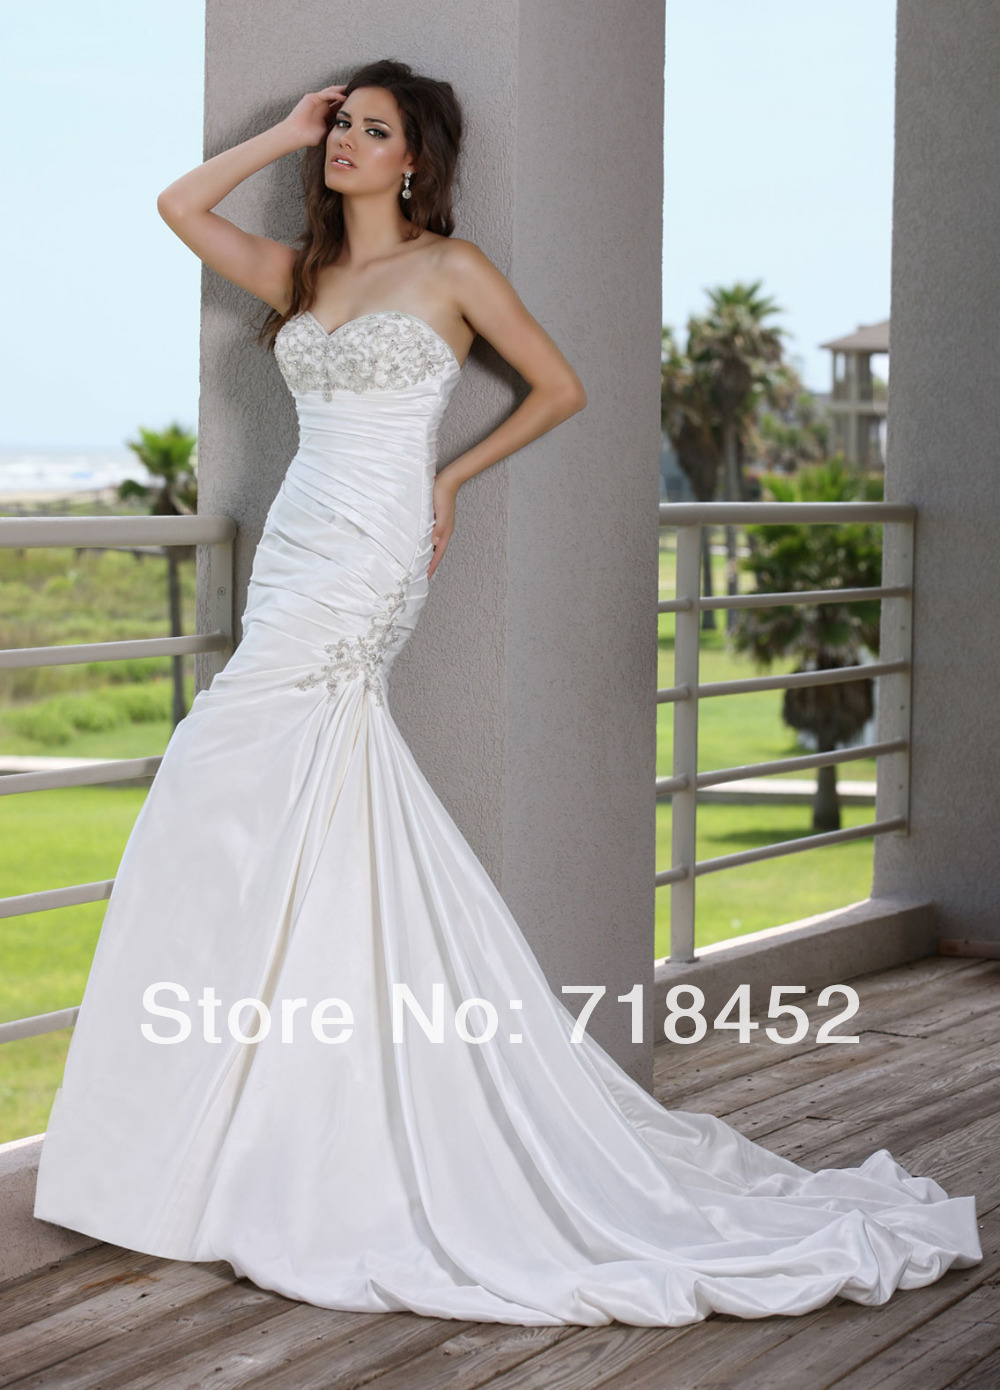 Online Get Cheap Irish Wedding Gown